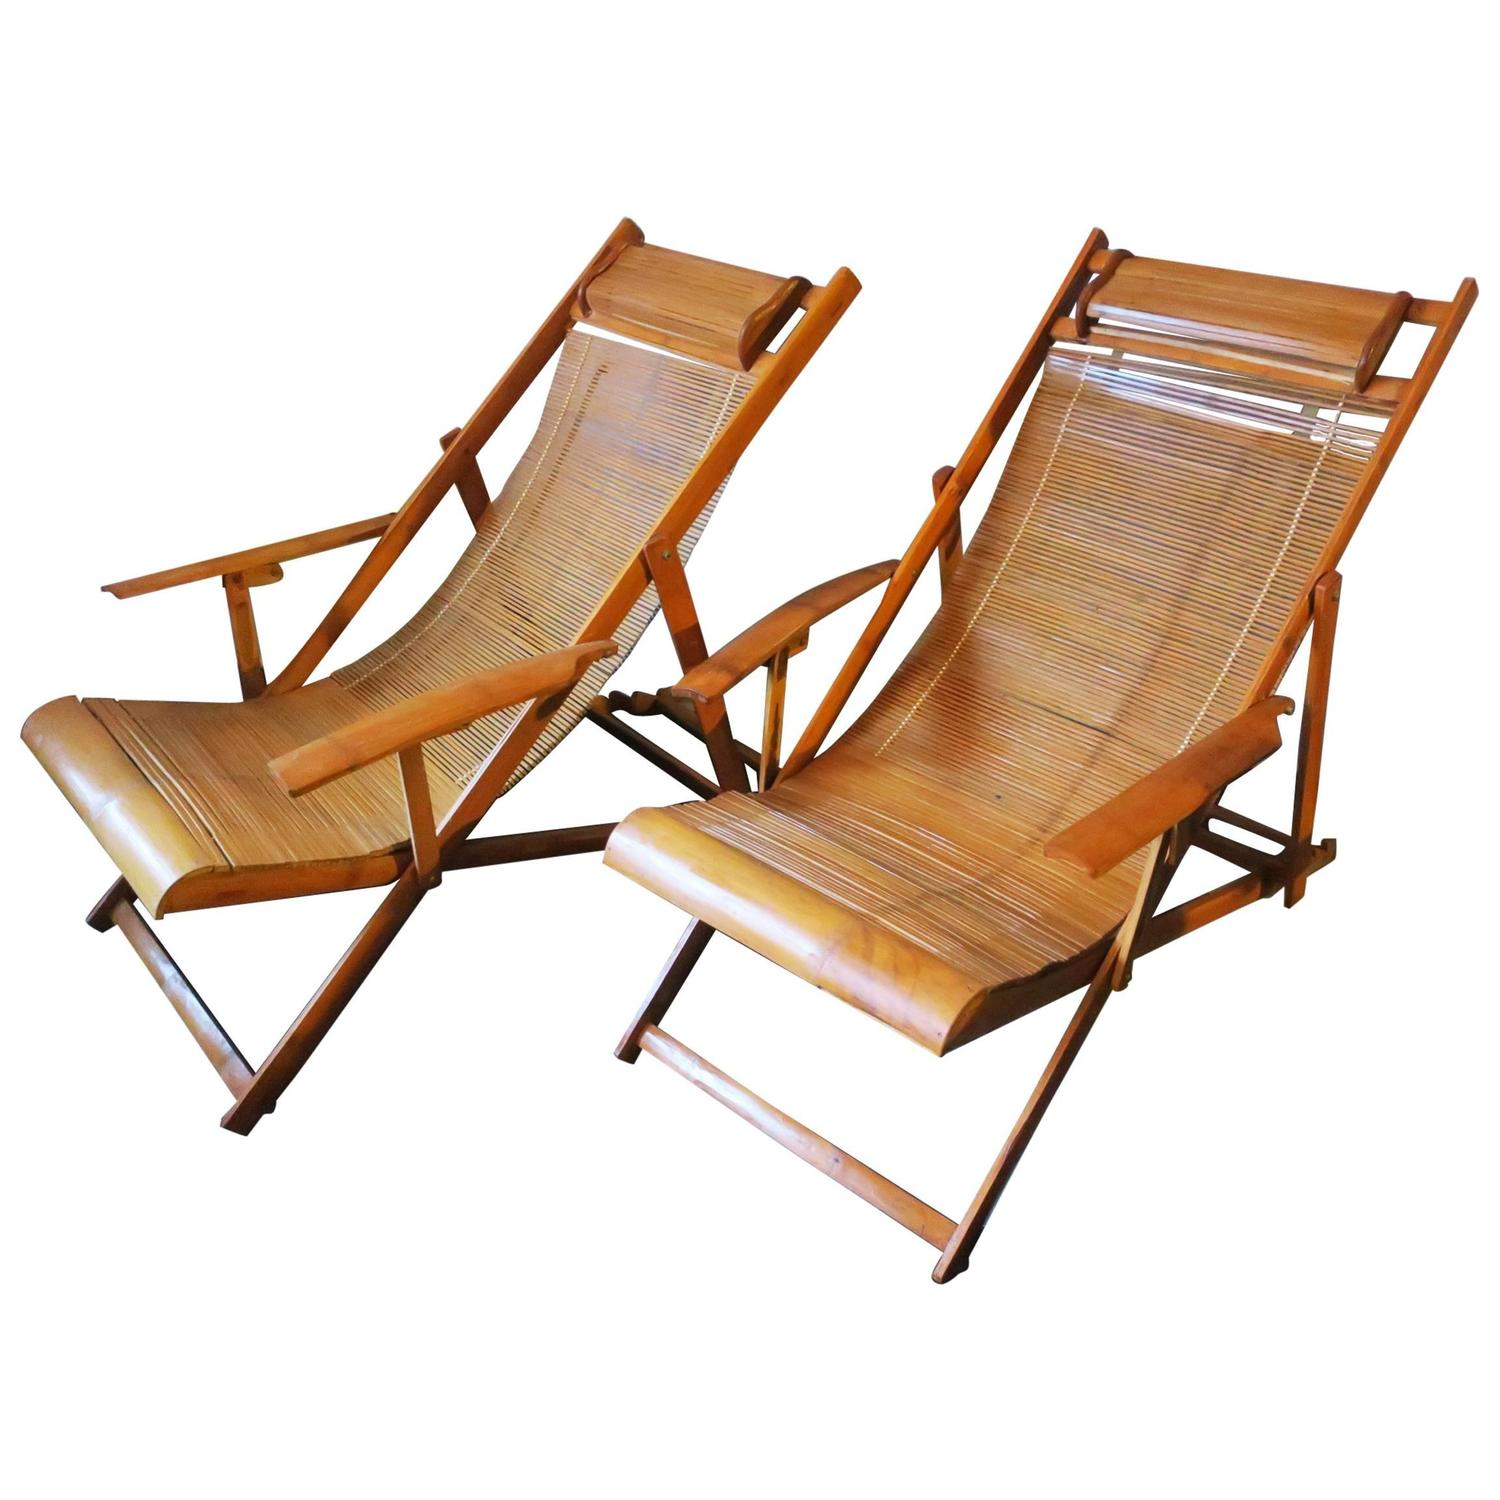 Bamboo Lounge Chairs 79 For Sale at 1stdibs